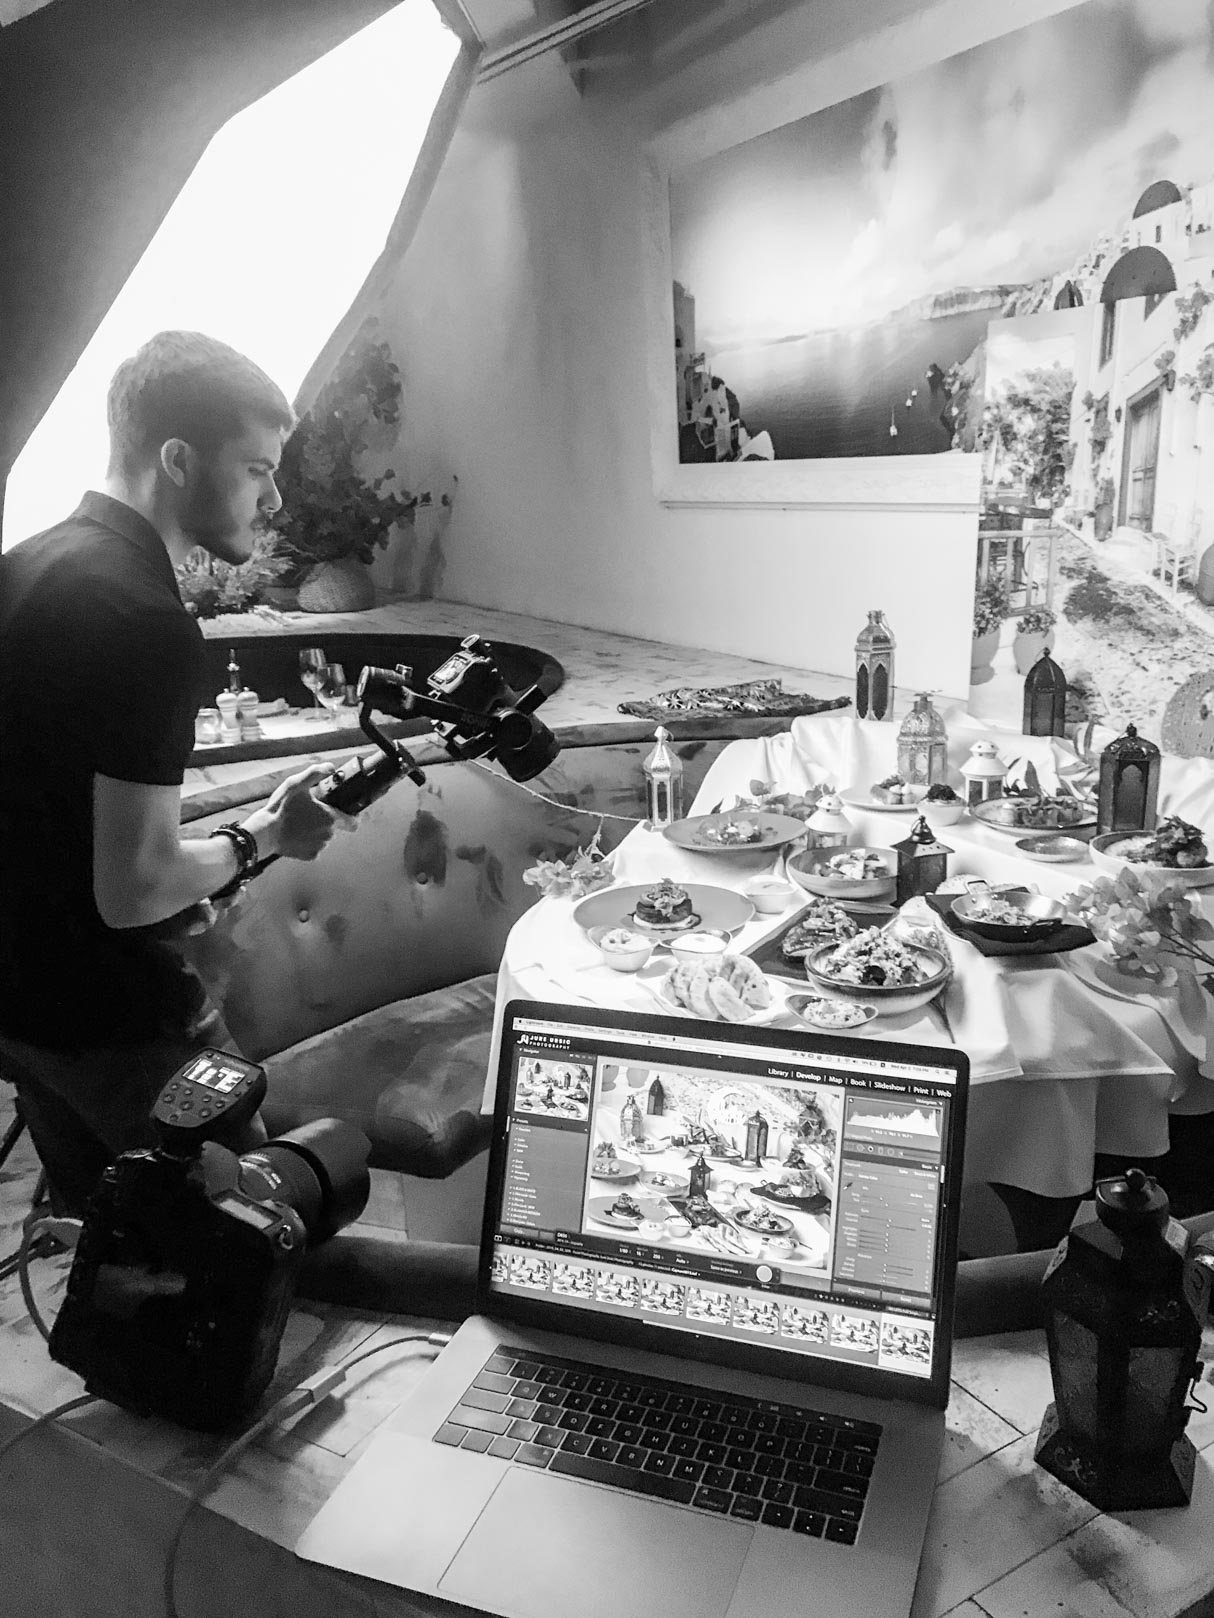 OPA Dubai - Food Photography Behind the scene